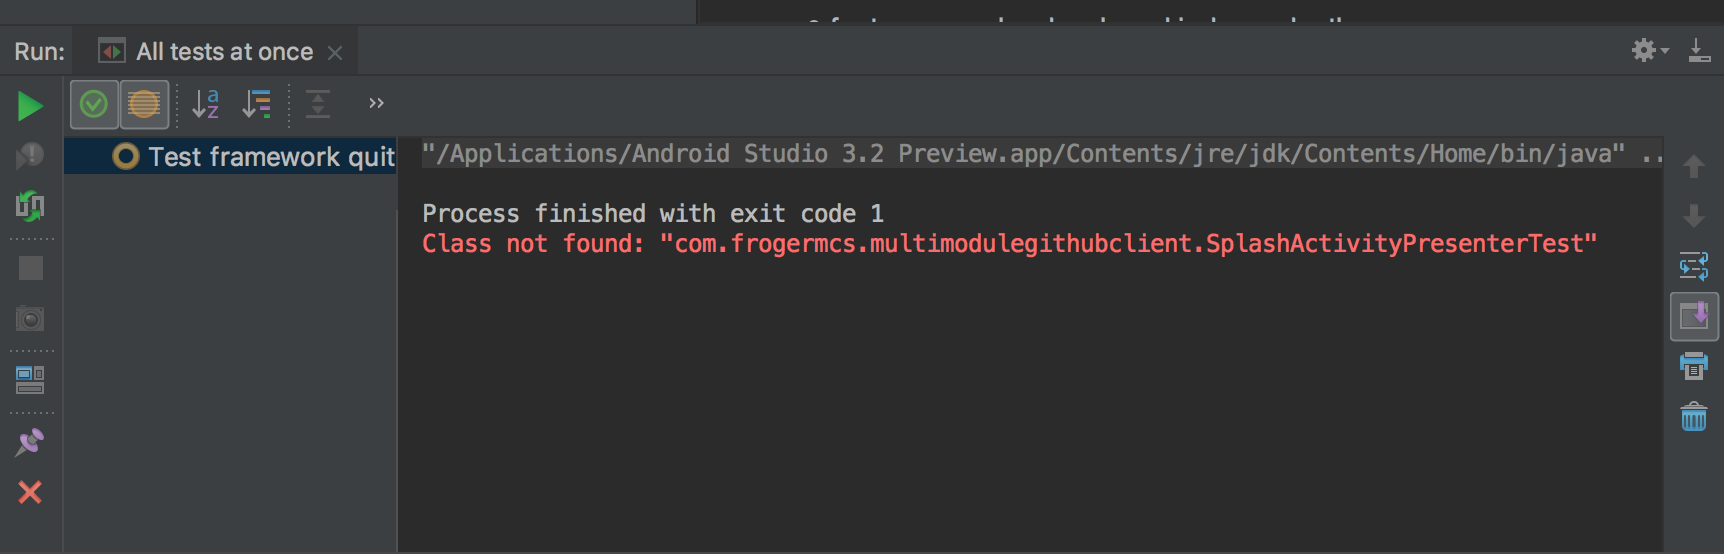 Android Studio issues